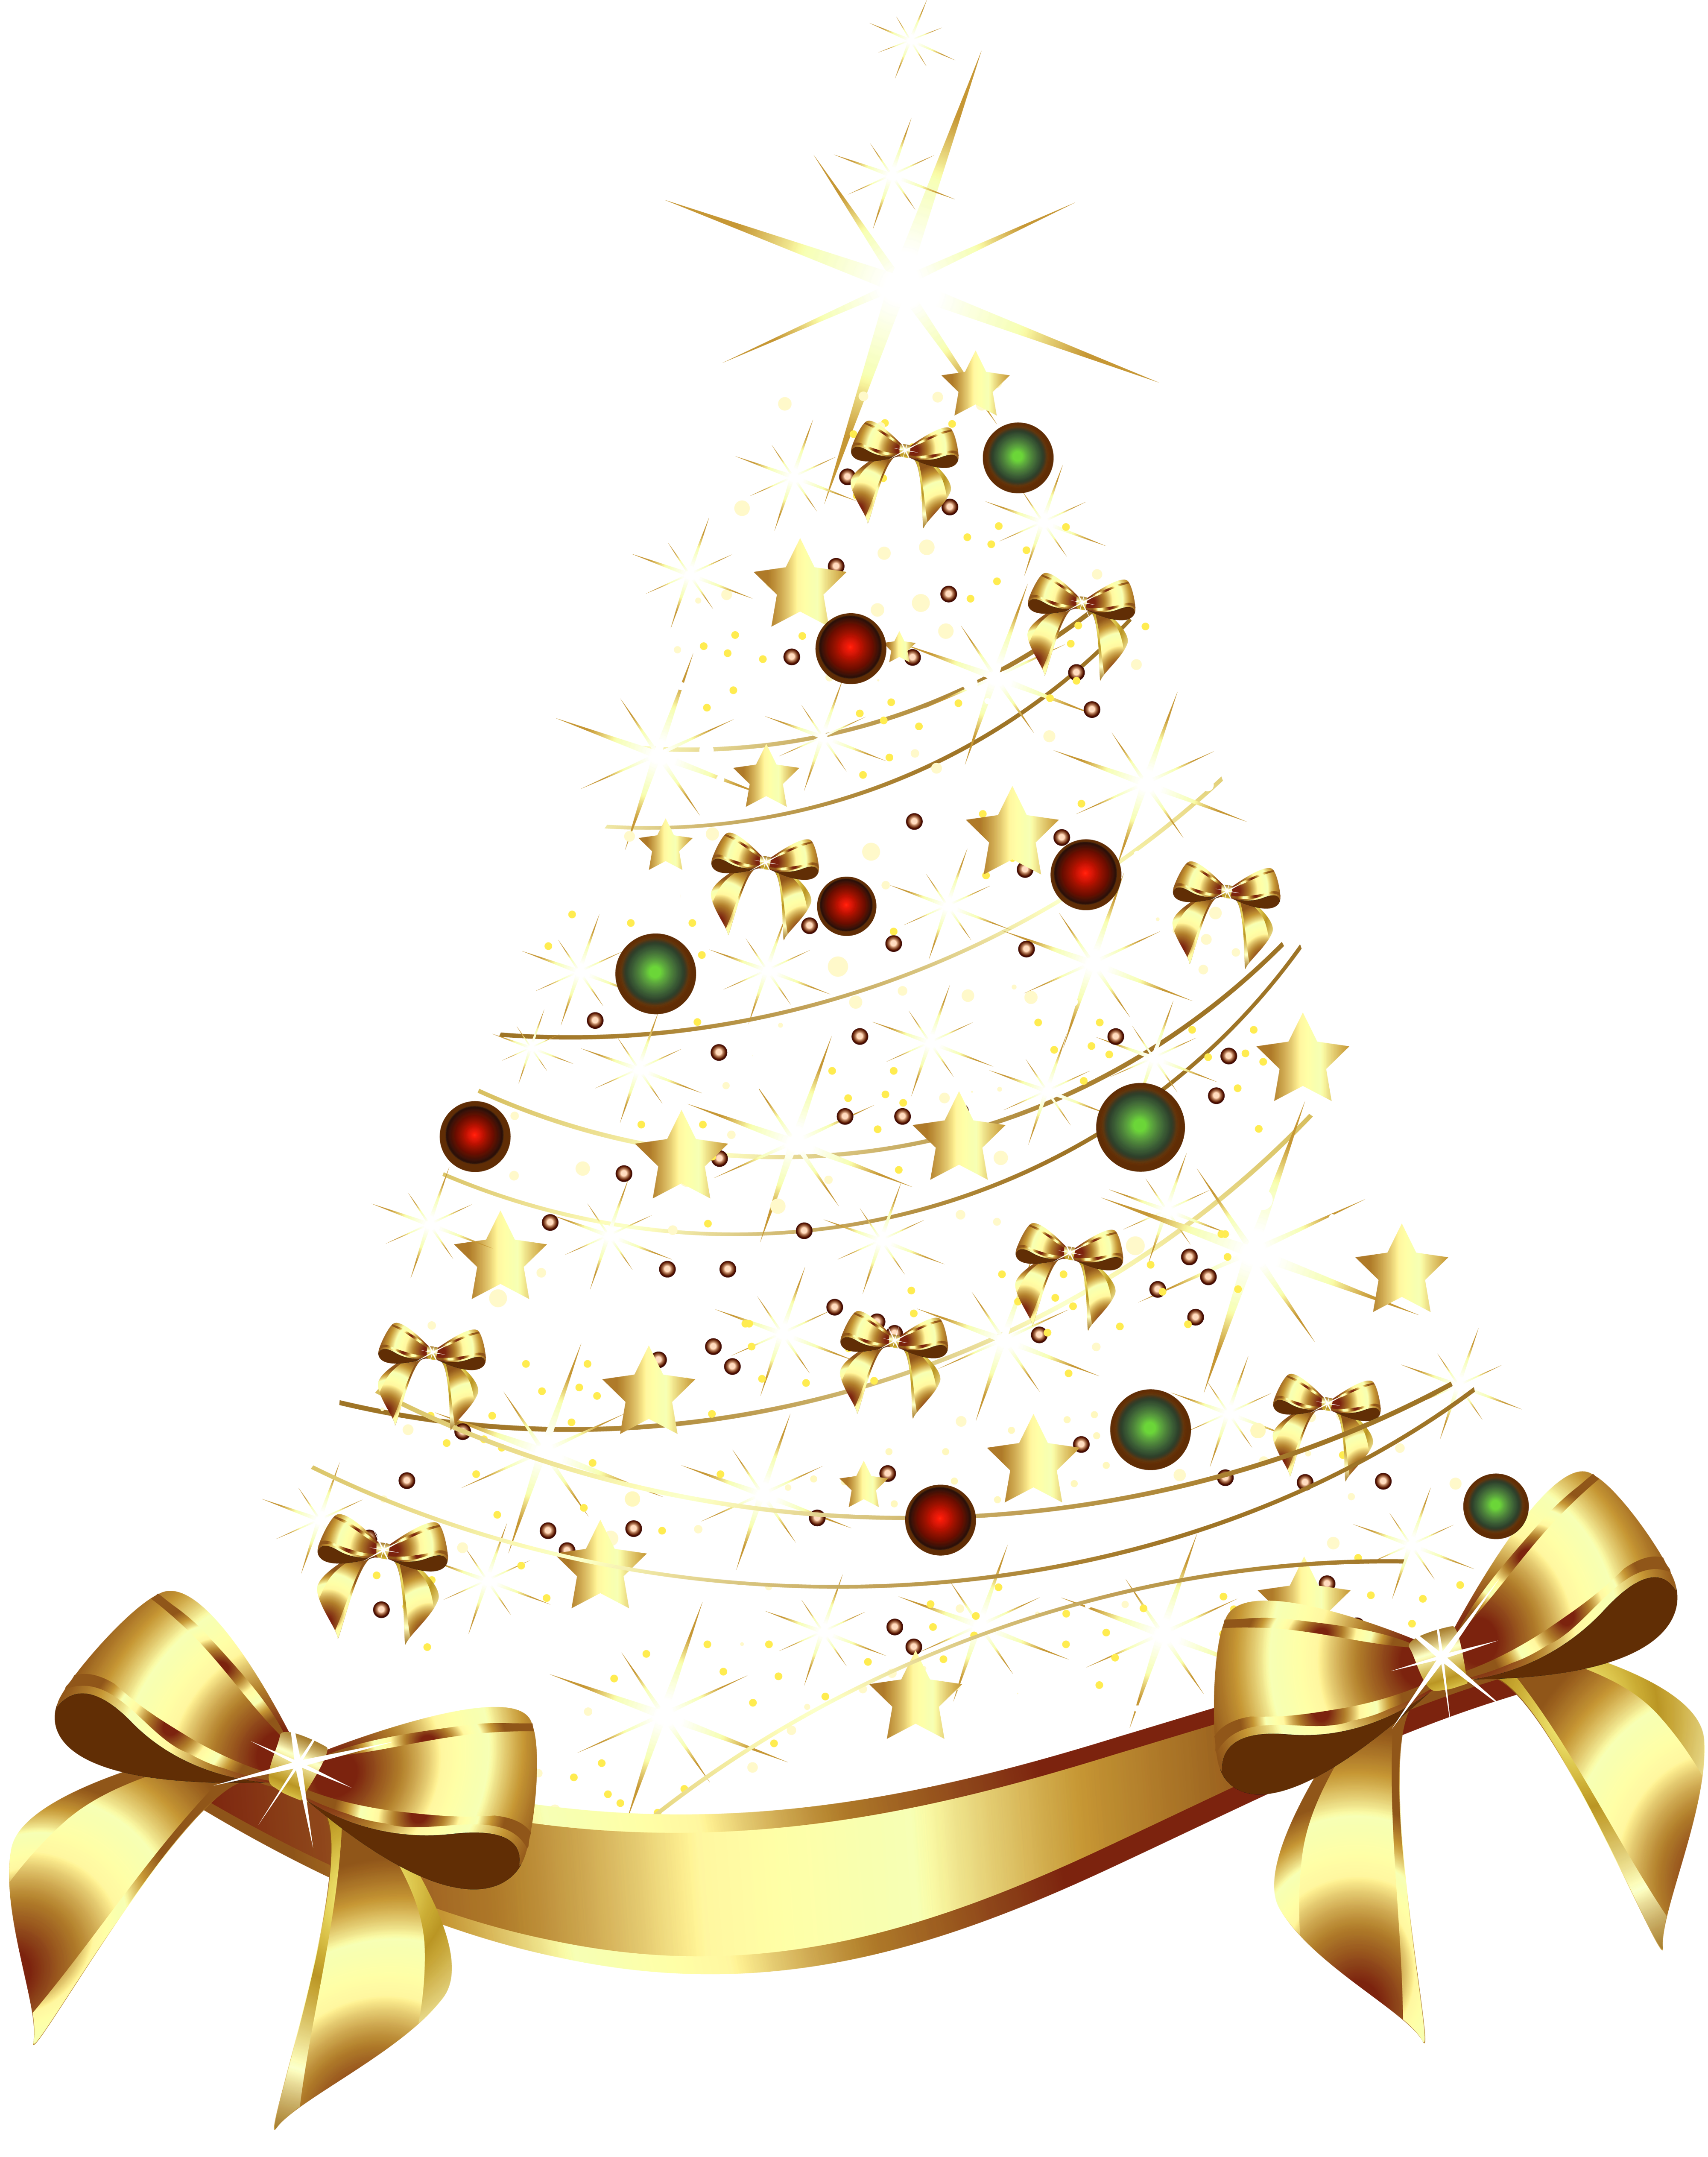 Christmas beach clipart black and white stock Large Transparent Gold Christmas Tree with Gold Bow PNG Clipart ... black and white stock